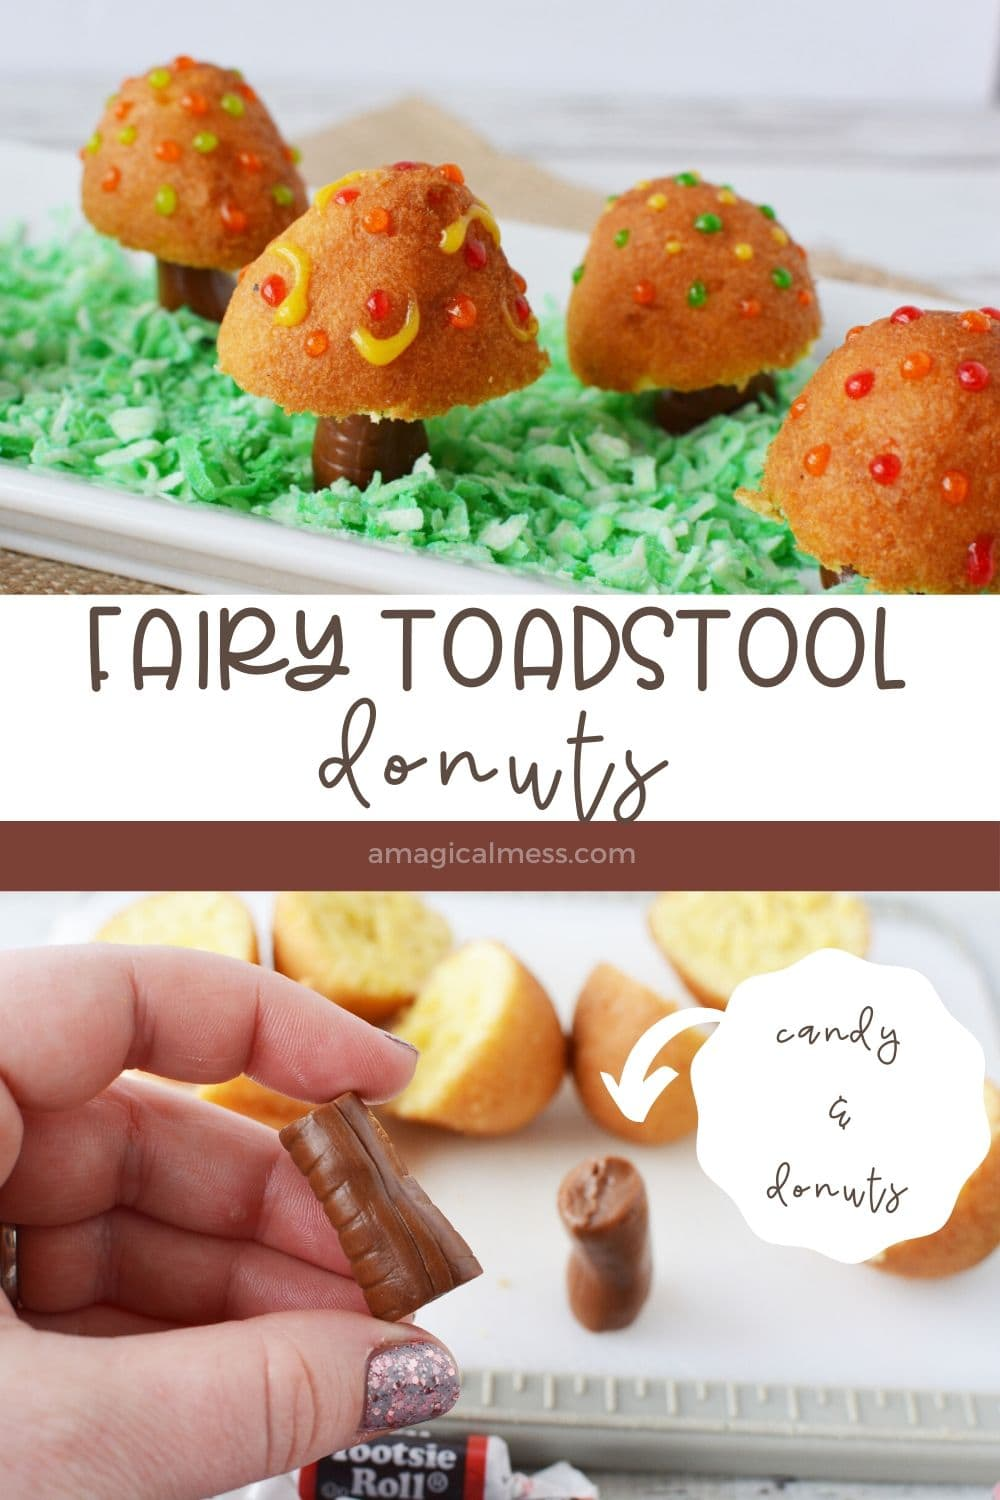 donuts treats that look like toadstools